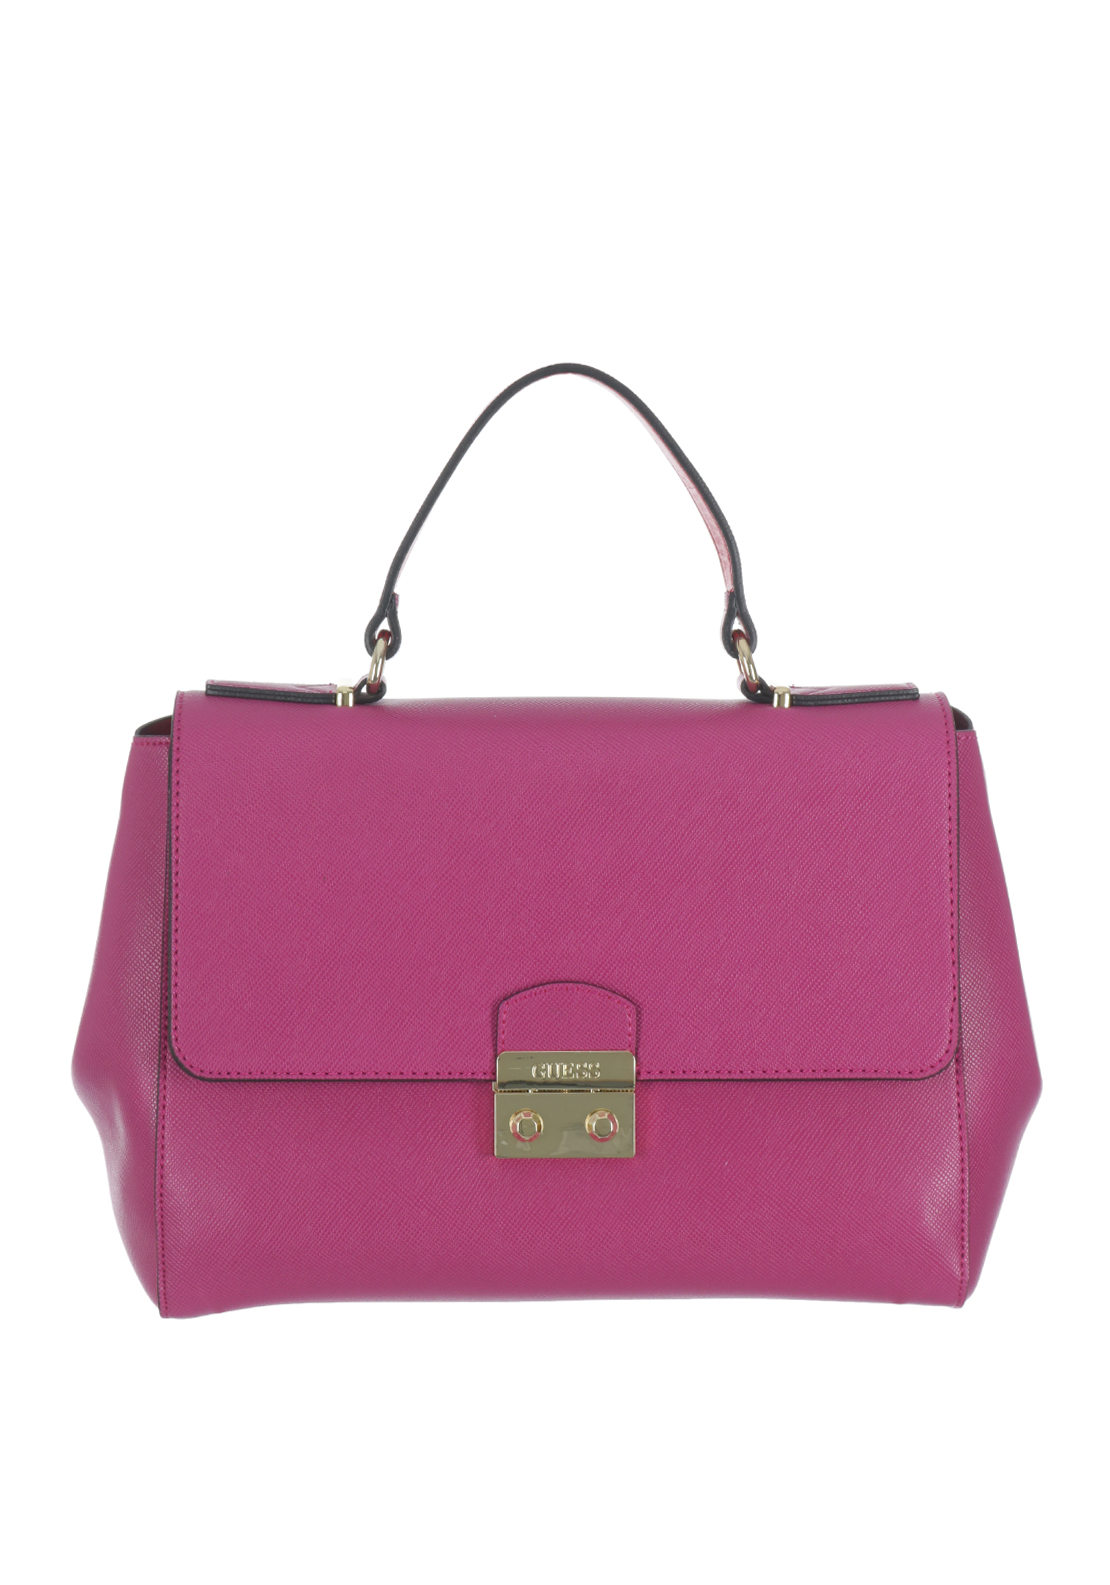 Guess Aria Top Handle Bag, Fuchsia